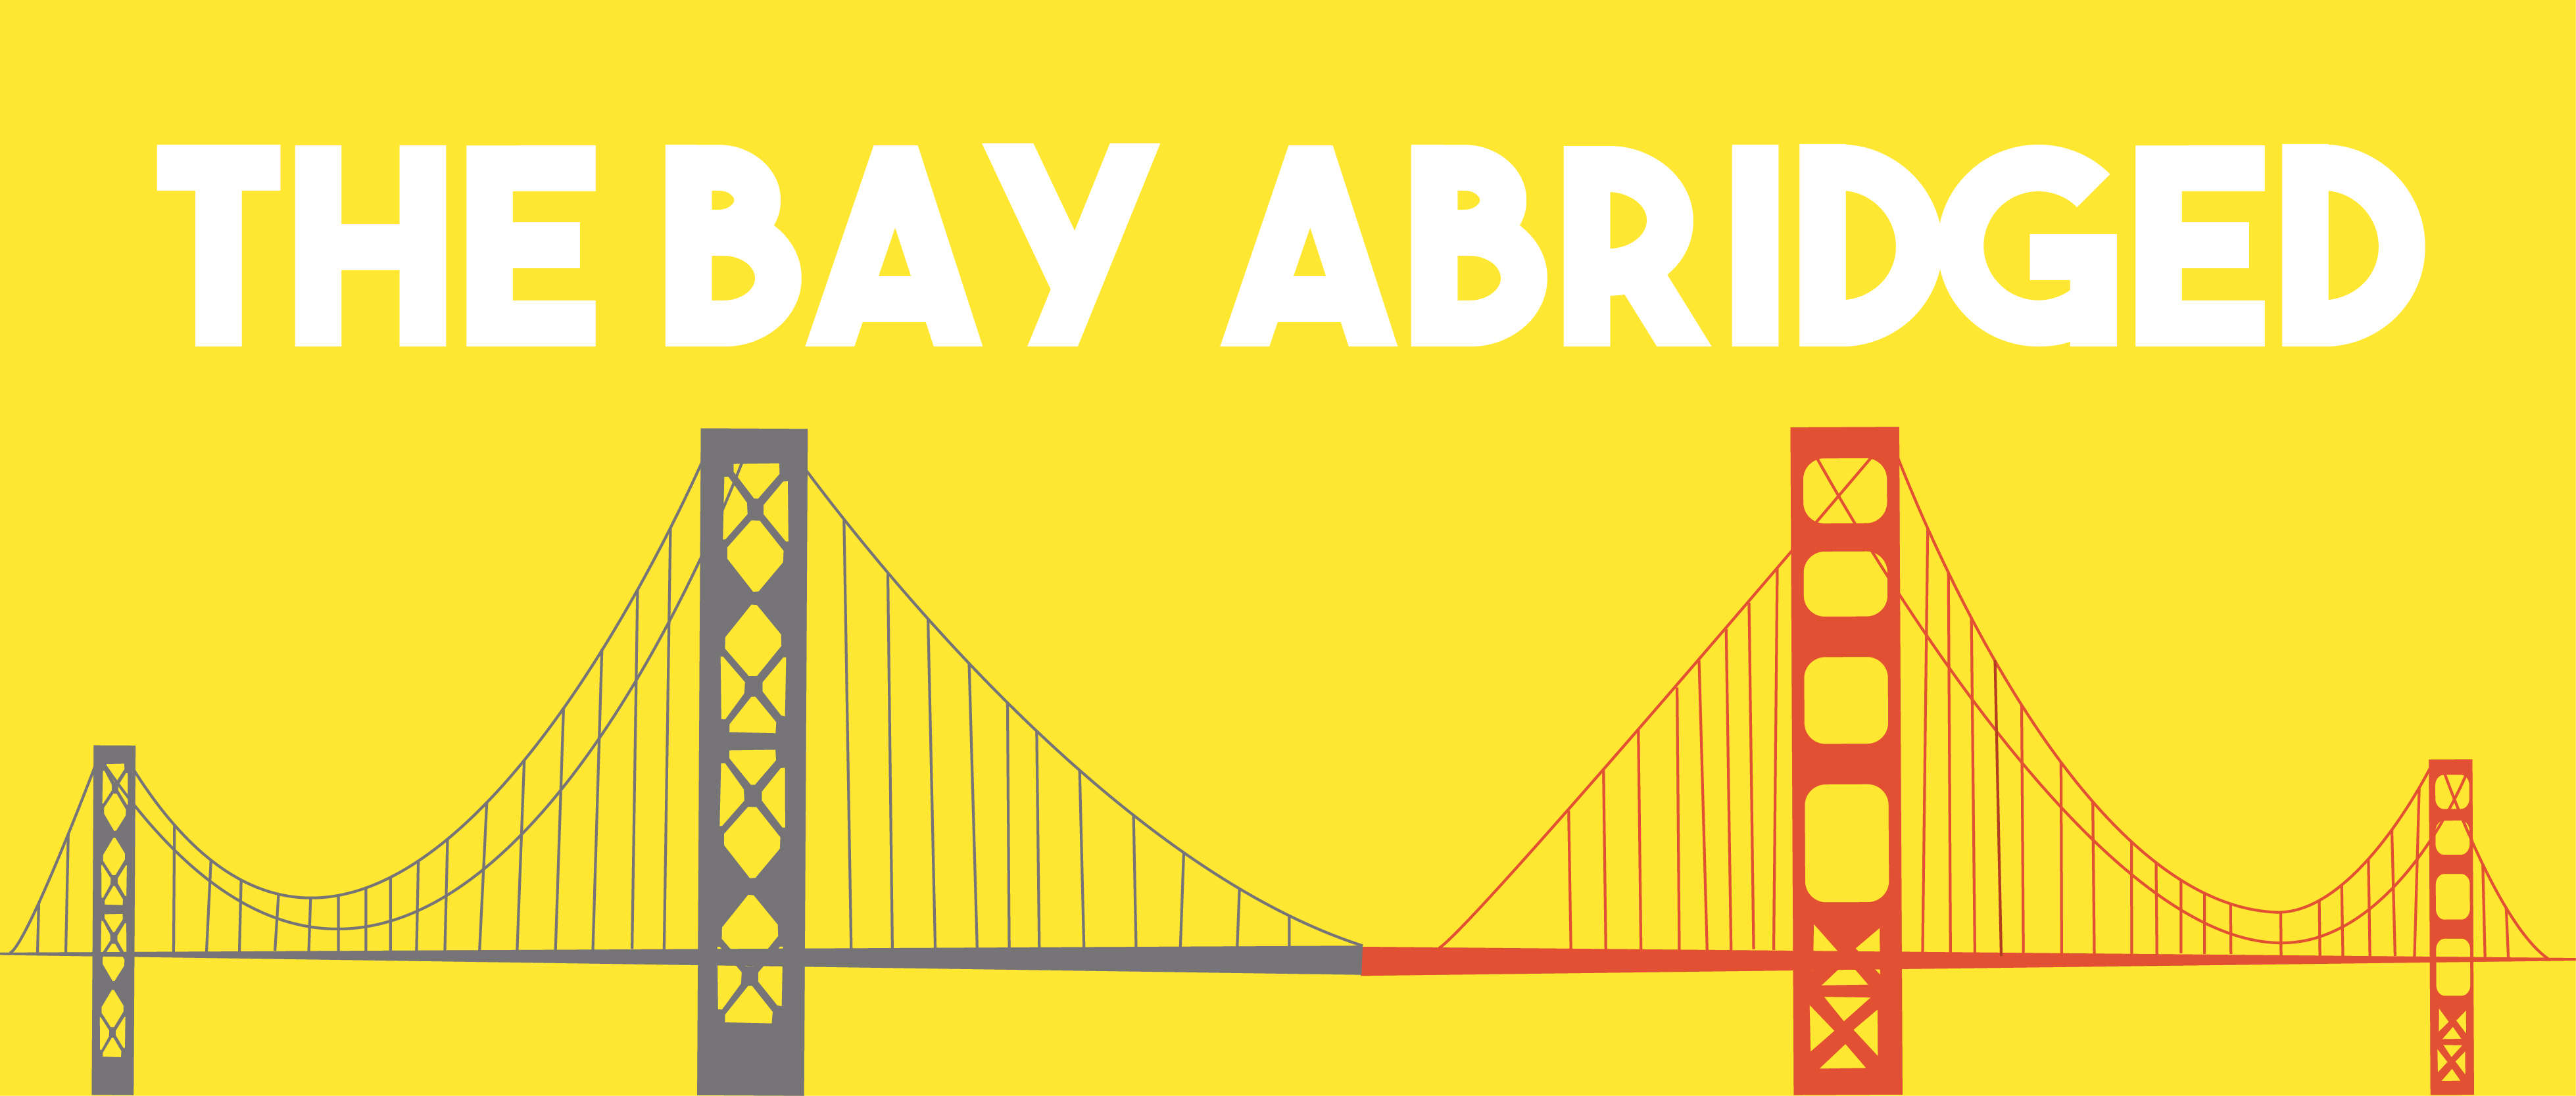 The Bay Abridged